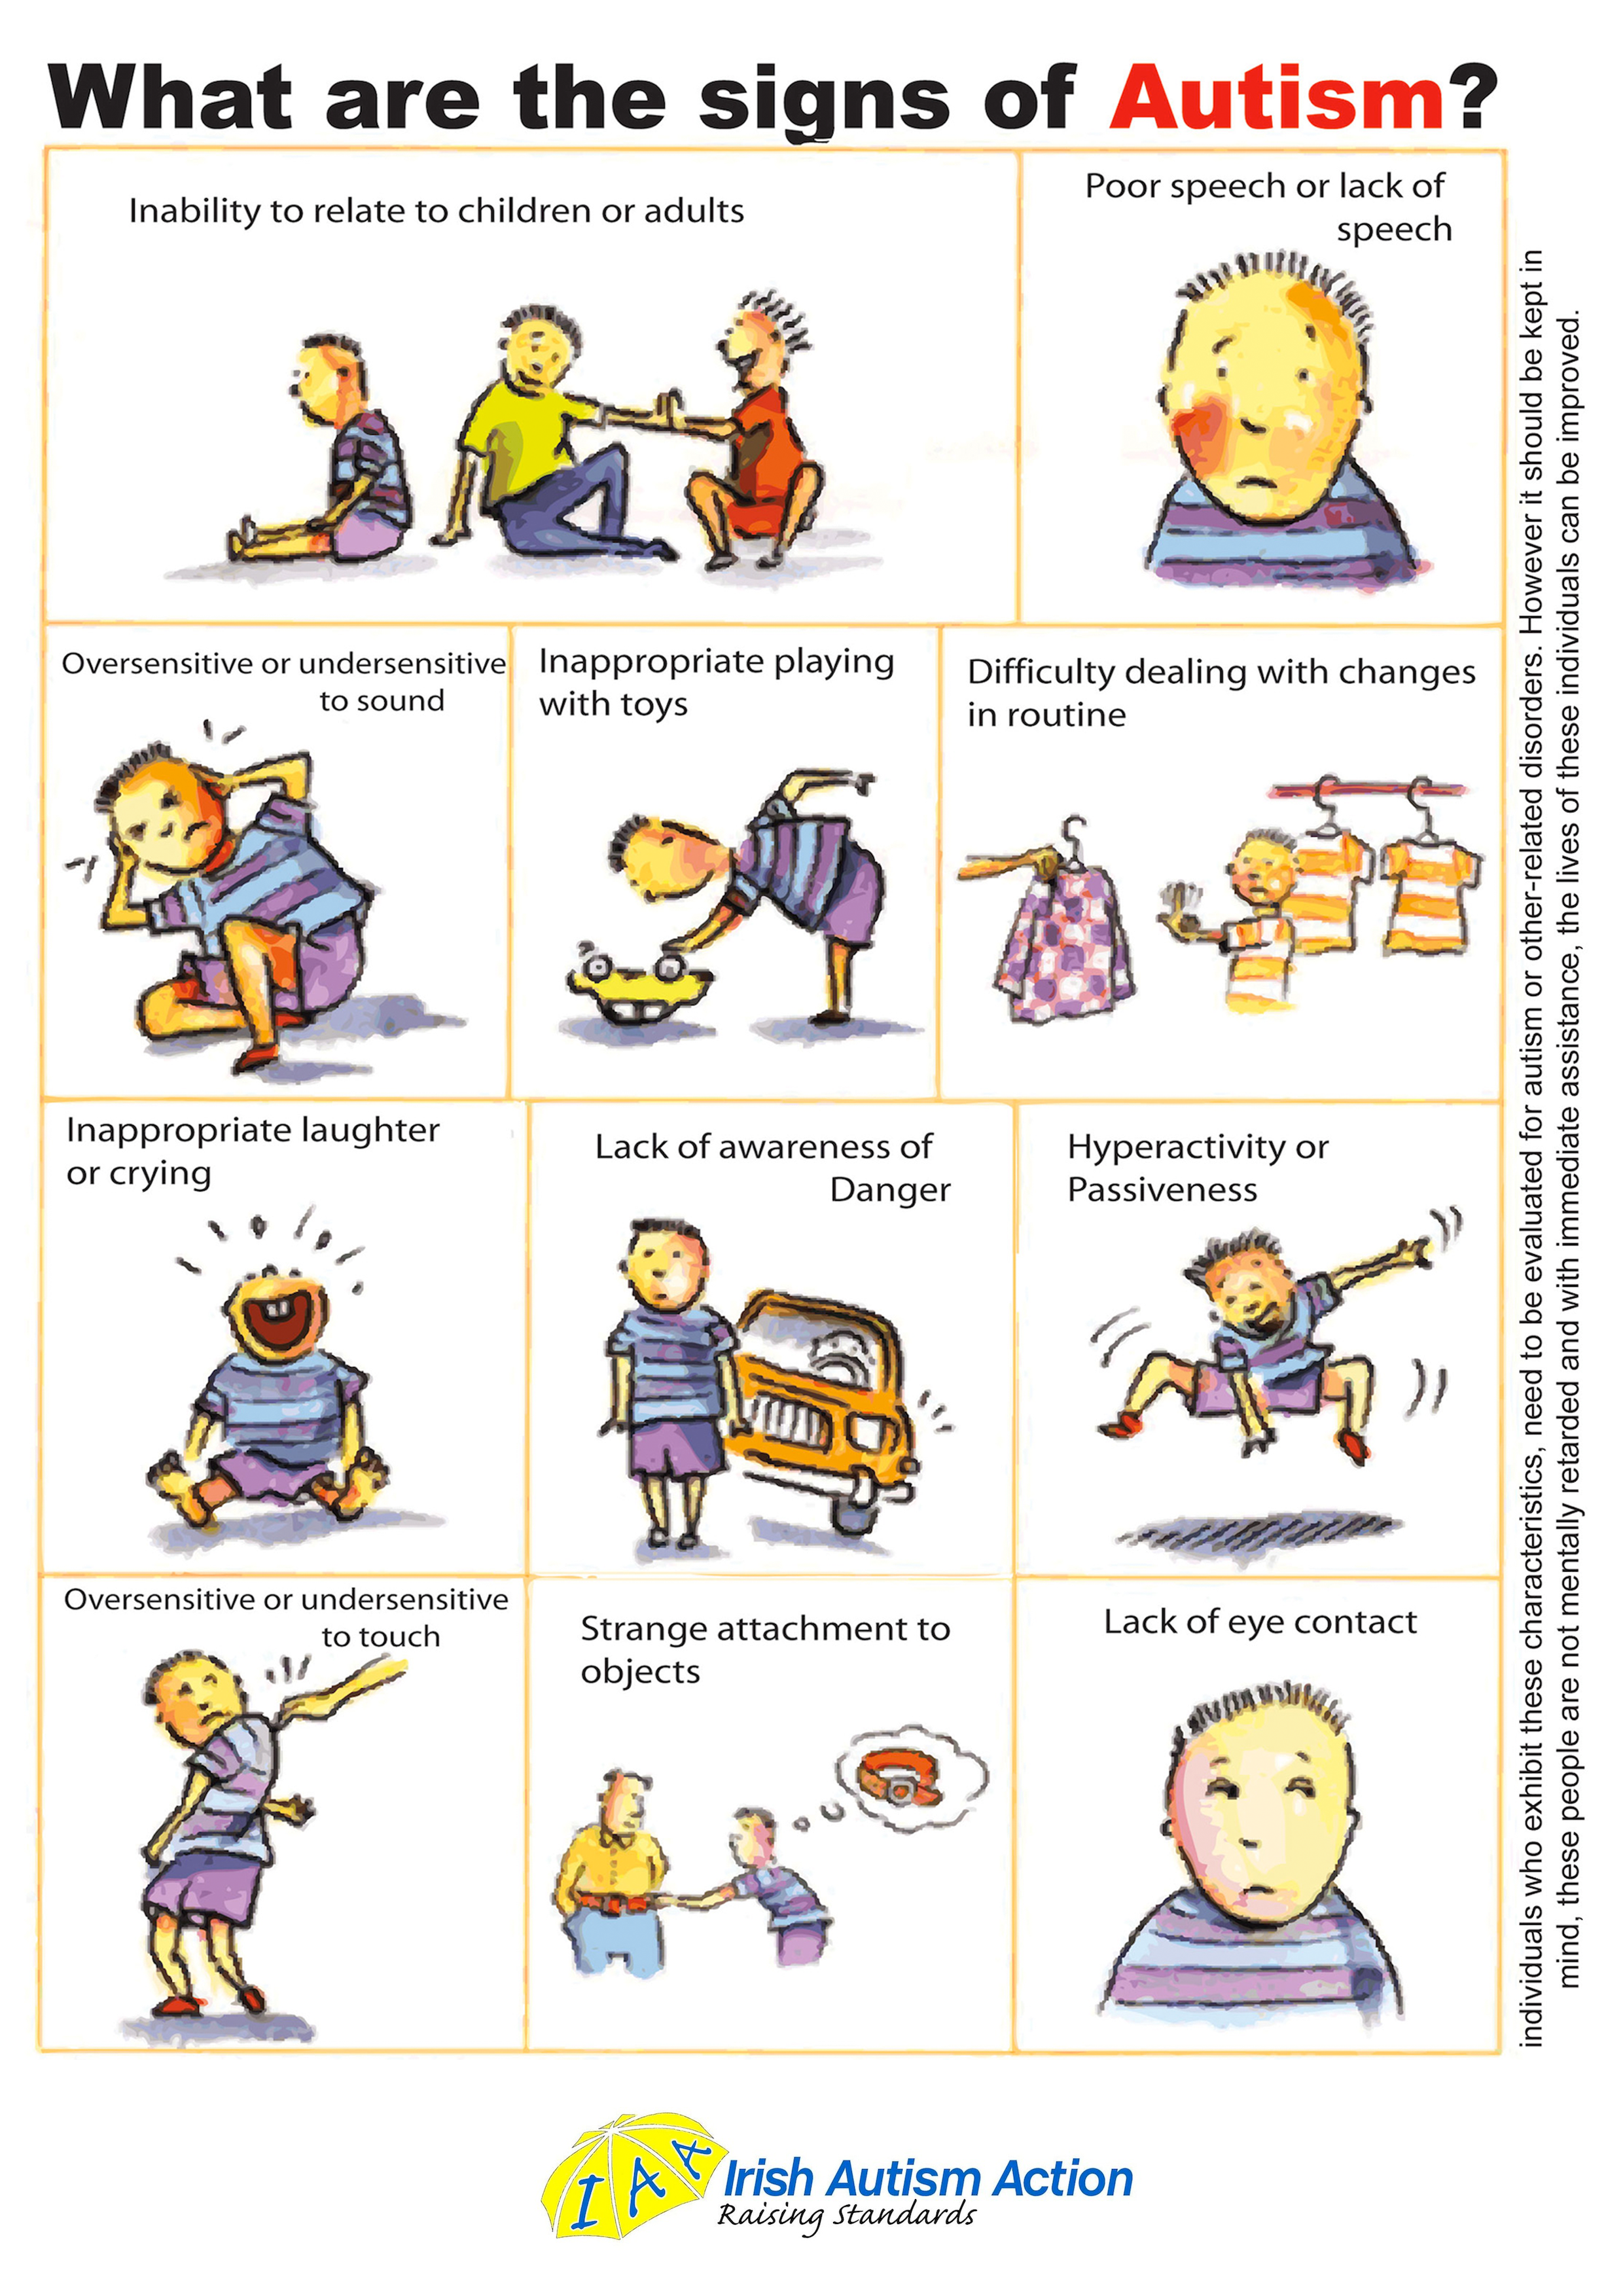 Signs of we need. Autism clipart poor communication